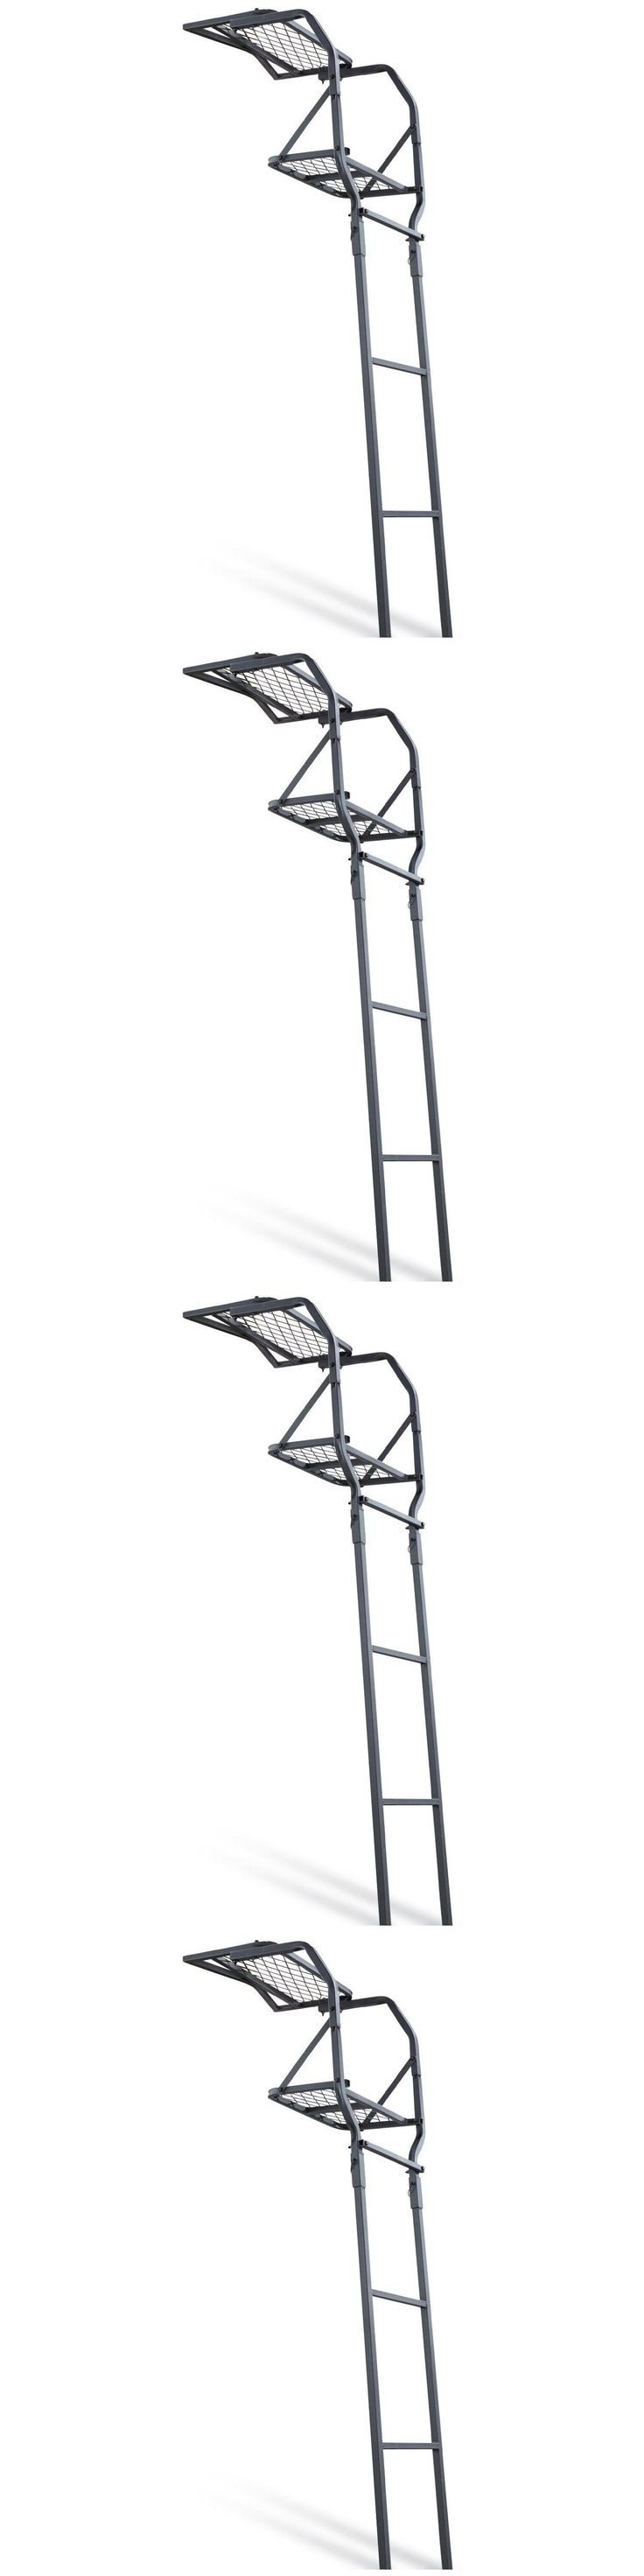 Tree Stands 52508: Deer Hunting Ladder Tree Stand Bow Treestand Man Climbing 15Ft New -> BUY IT NOW ONLY: $68.46 on eBay!